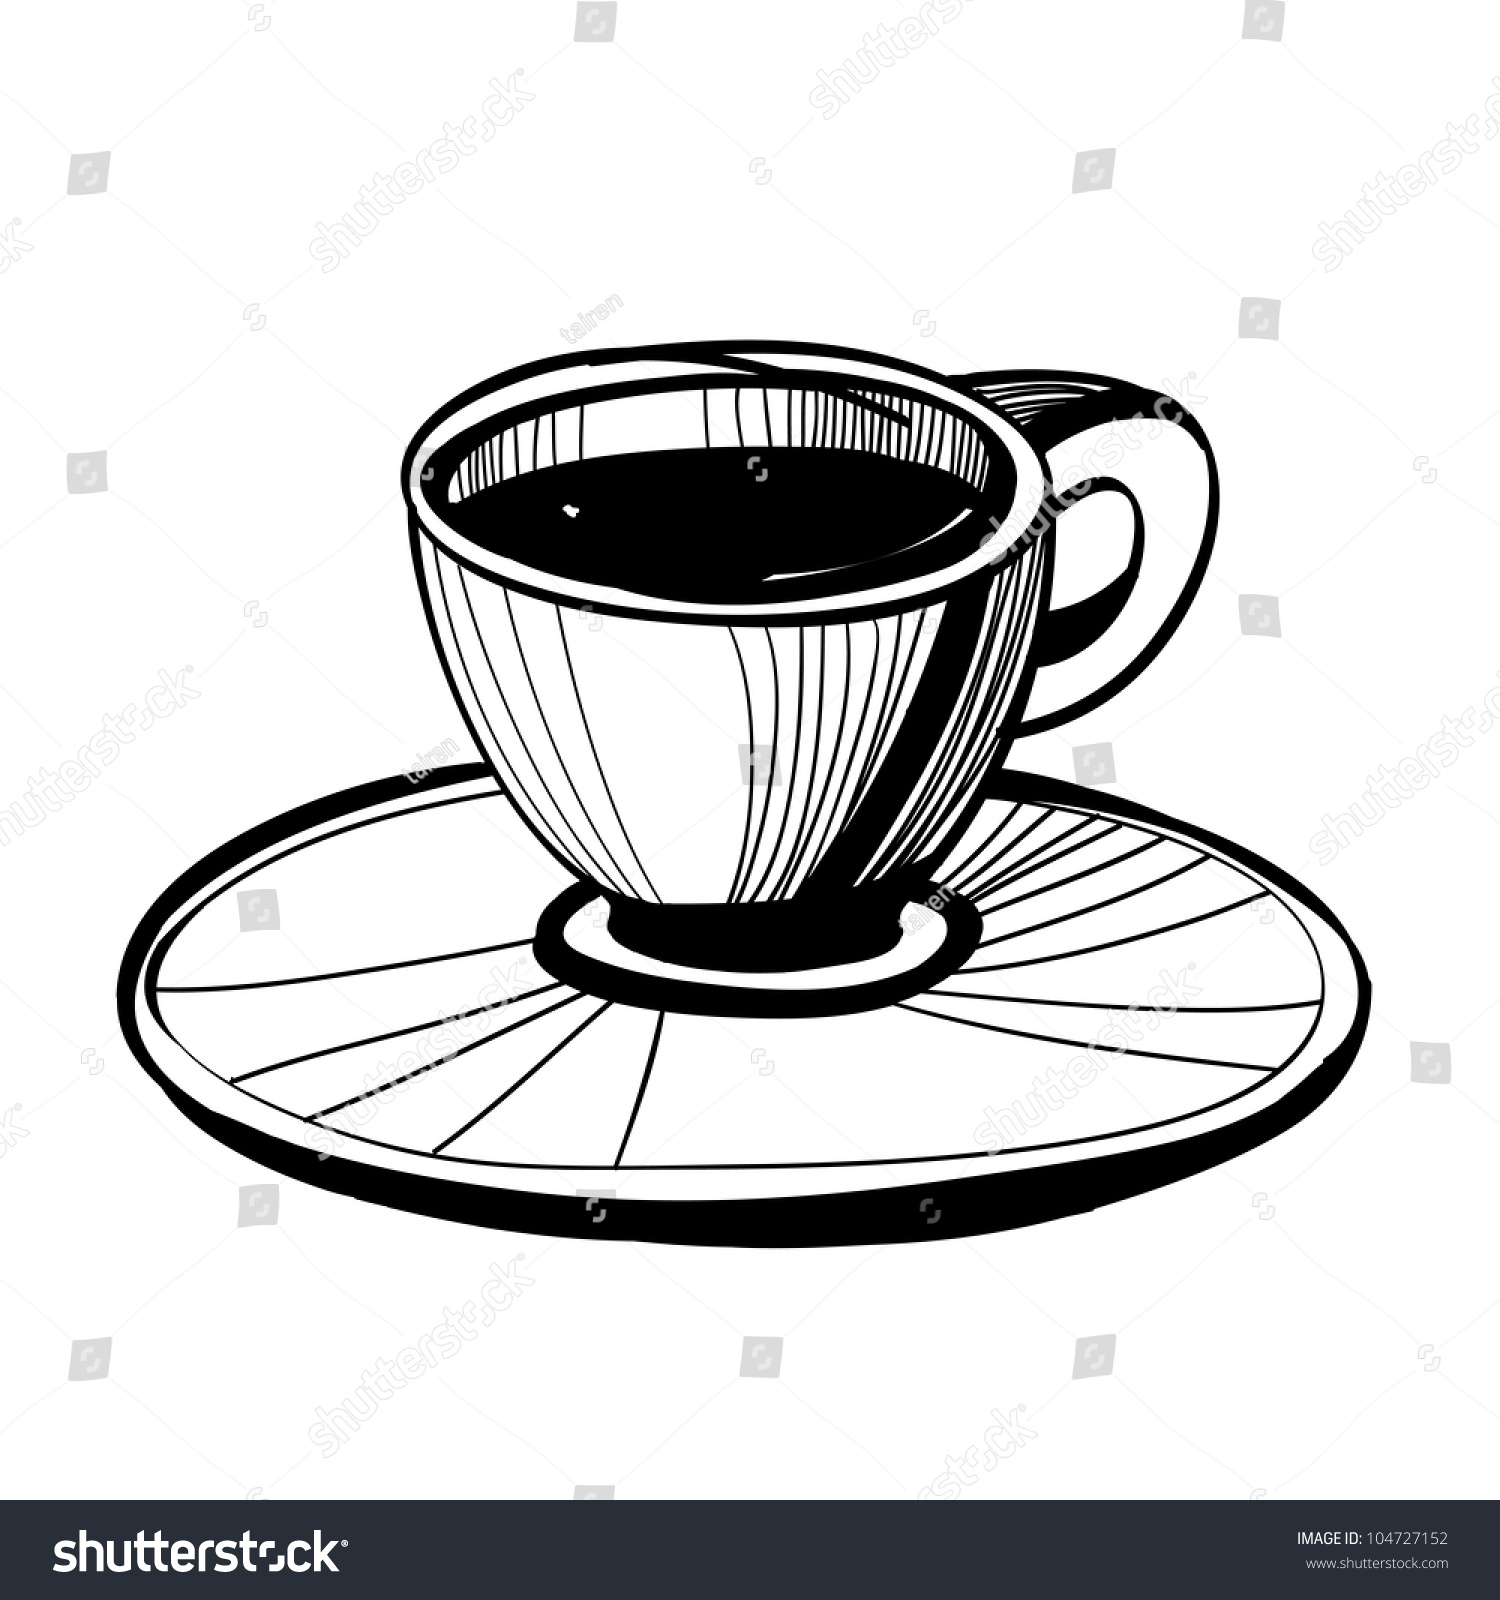 Coffee cup sketch - Black And White Simple Sketch Of A Coffee Cup With Saucer